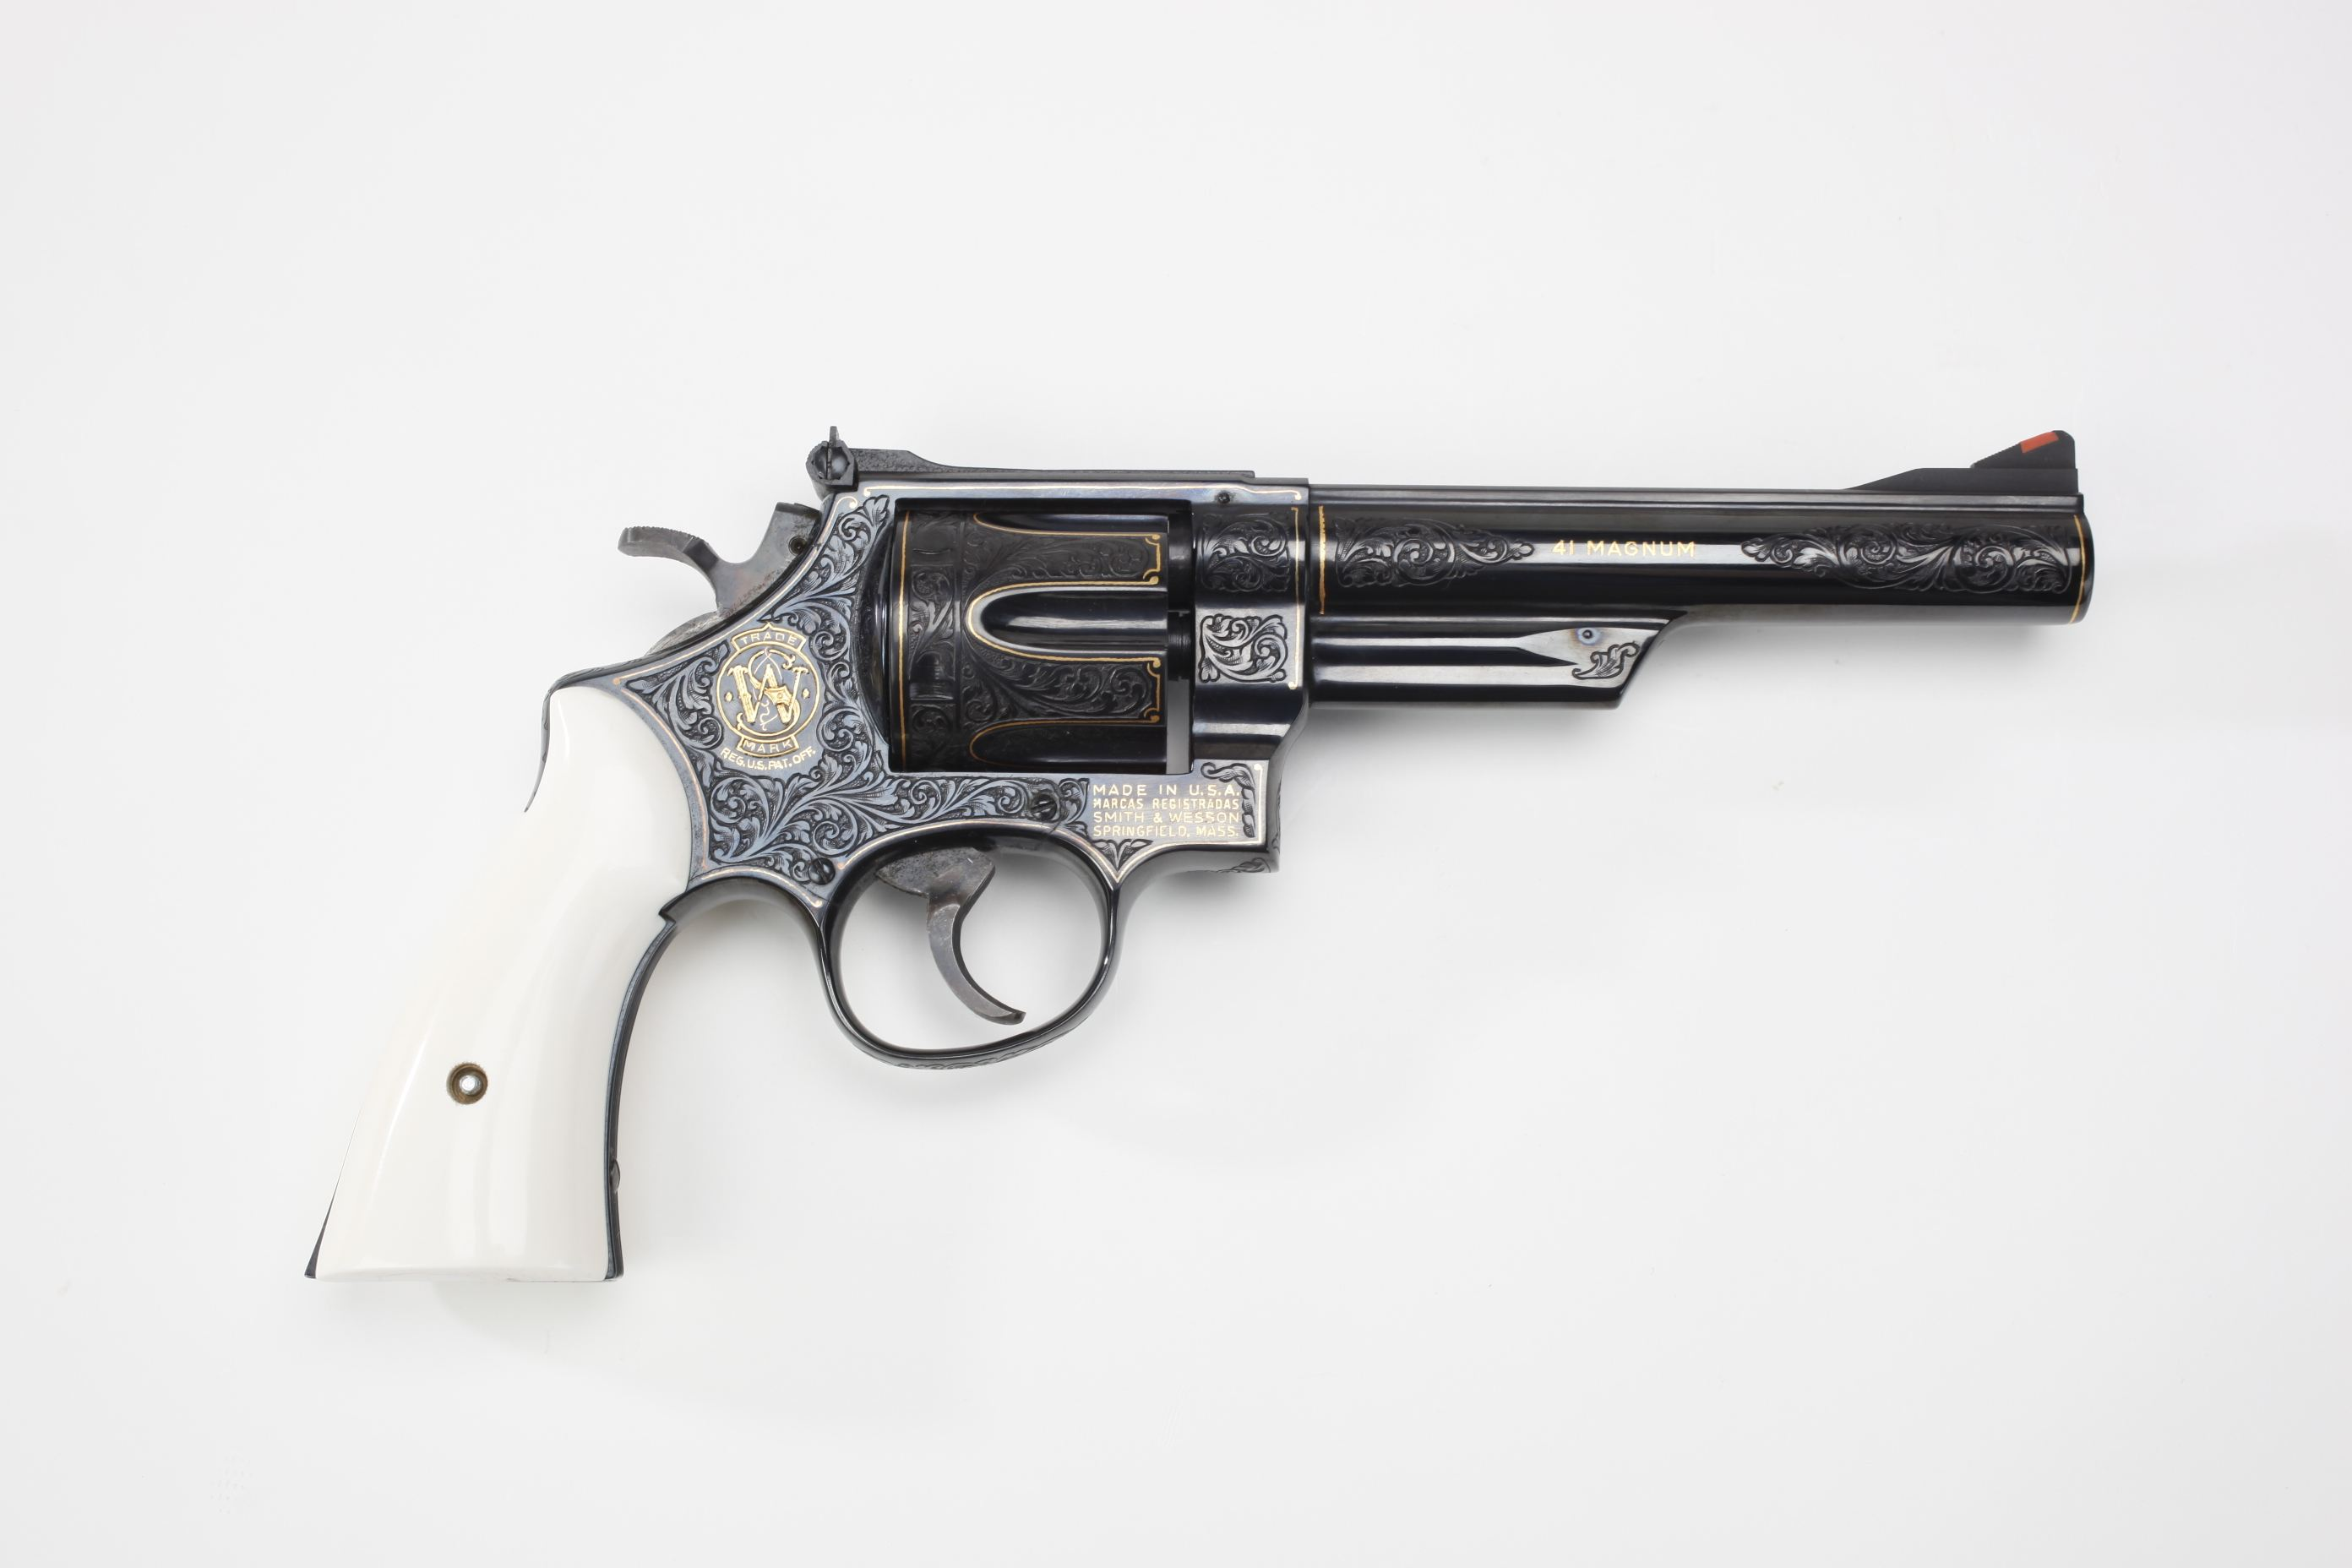 Smith & Wesson Model 57 Double-Action Revolver w/ ivory grip panels